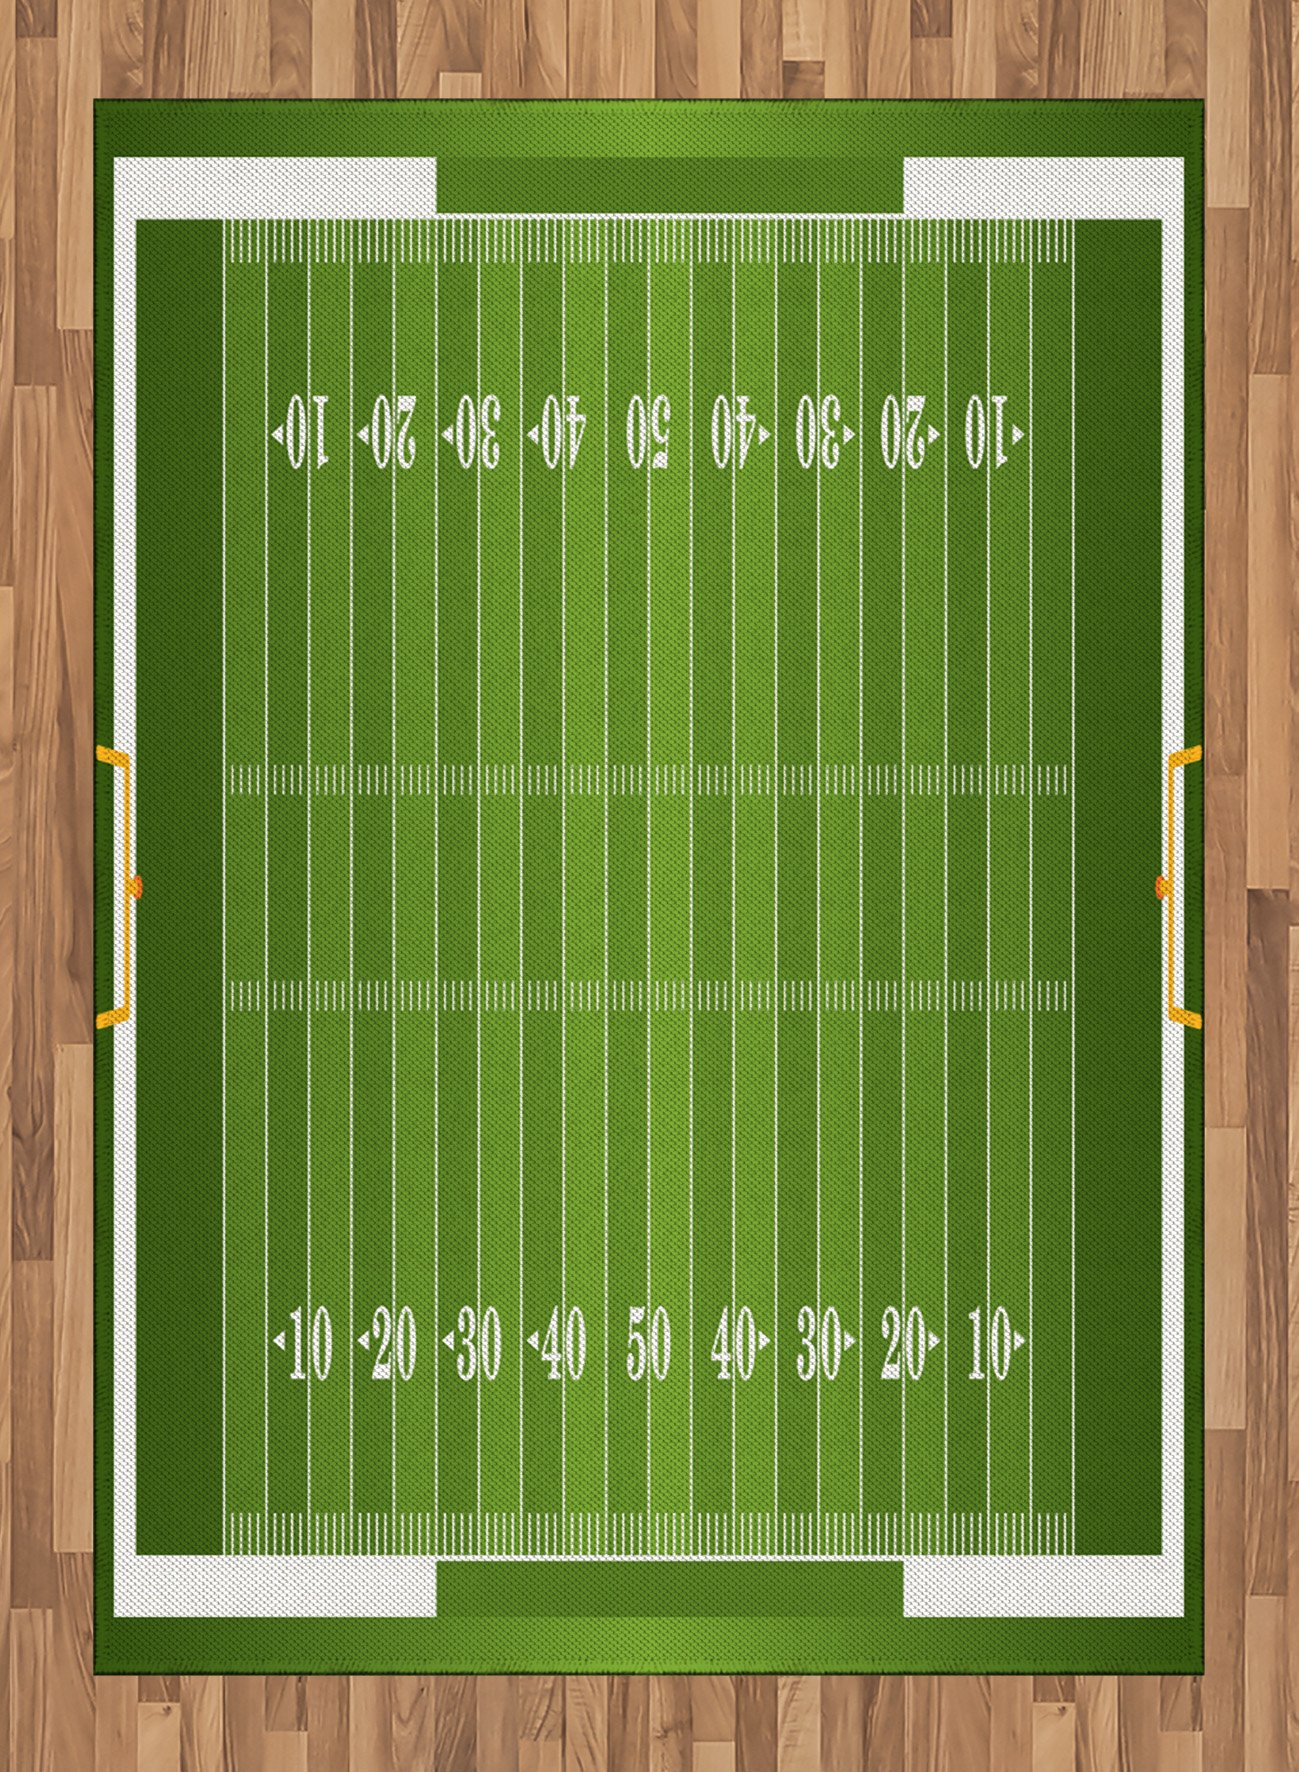 Football Area Rug by Lunarable, Sports Field in Green Gridiron Yard Competitive Games College Teamwork Superbowl, Flat Woven Accent Rug for Living Room Bedroom Dining Room, 5.2 x 7.5 FT, Green White